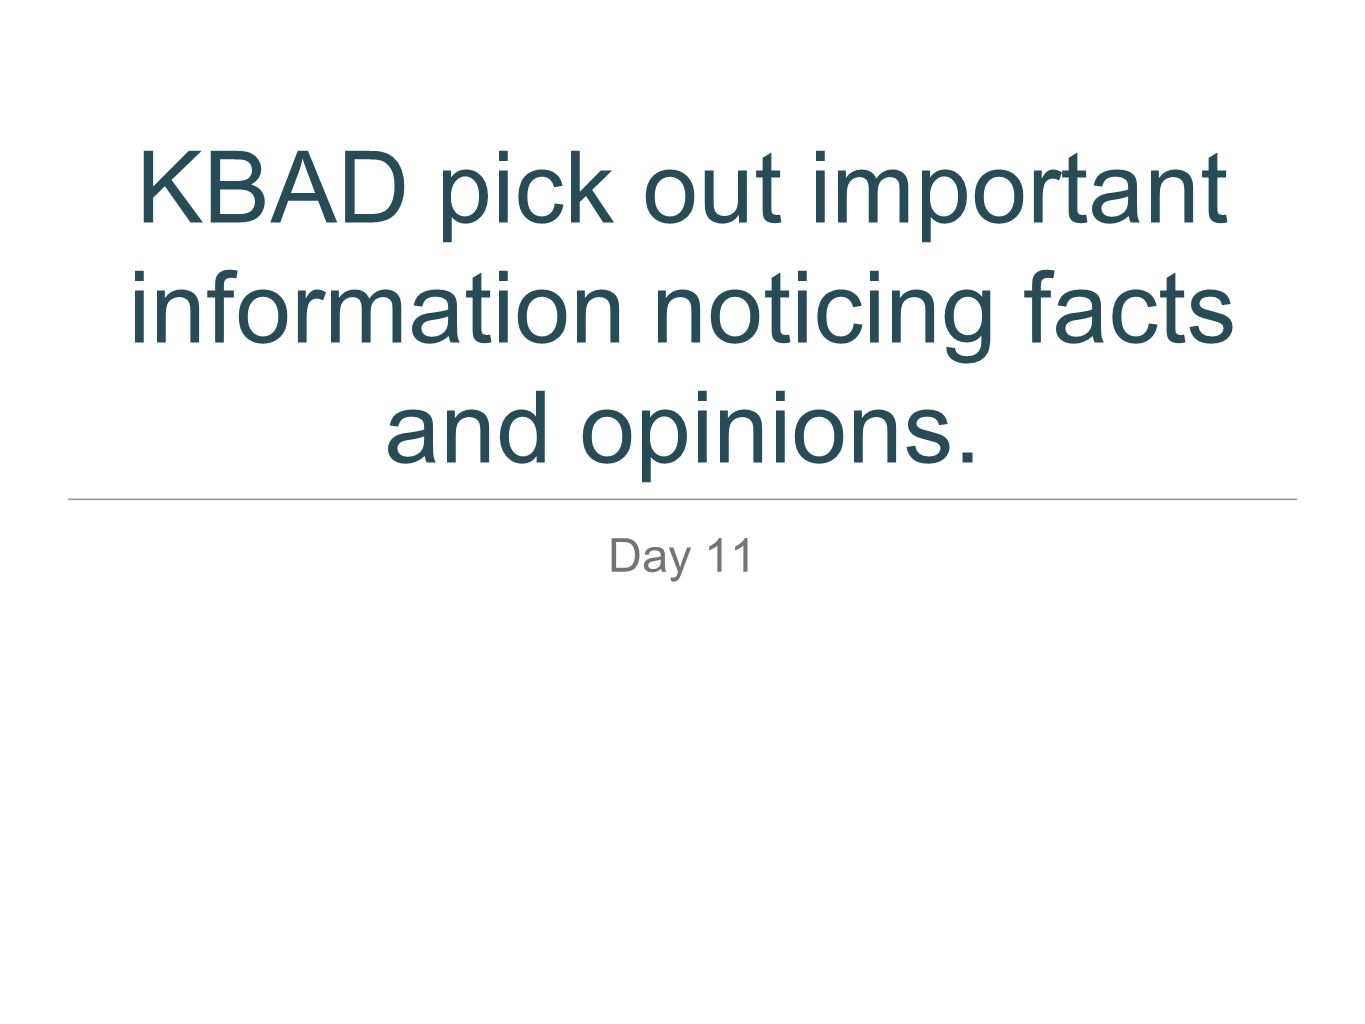 KBAD pick out important information noticing facts and opinions.